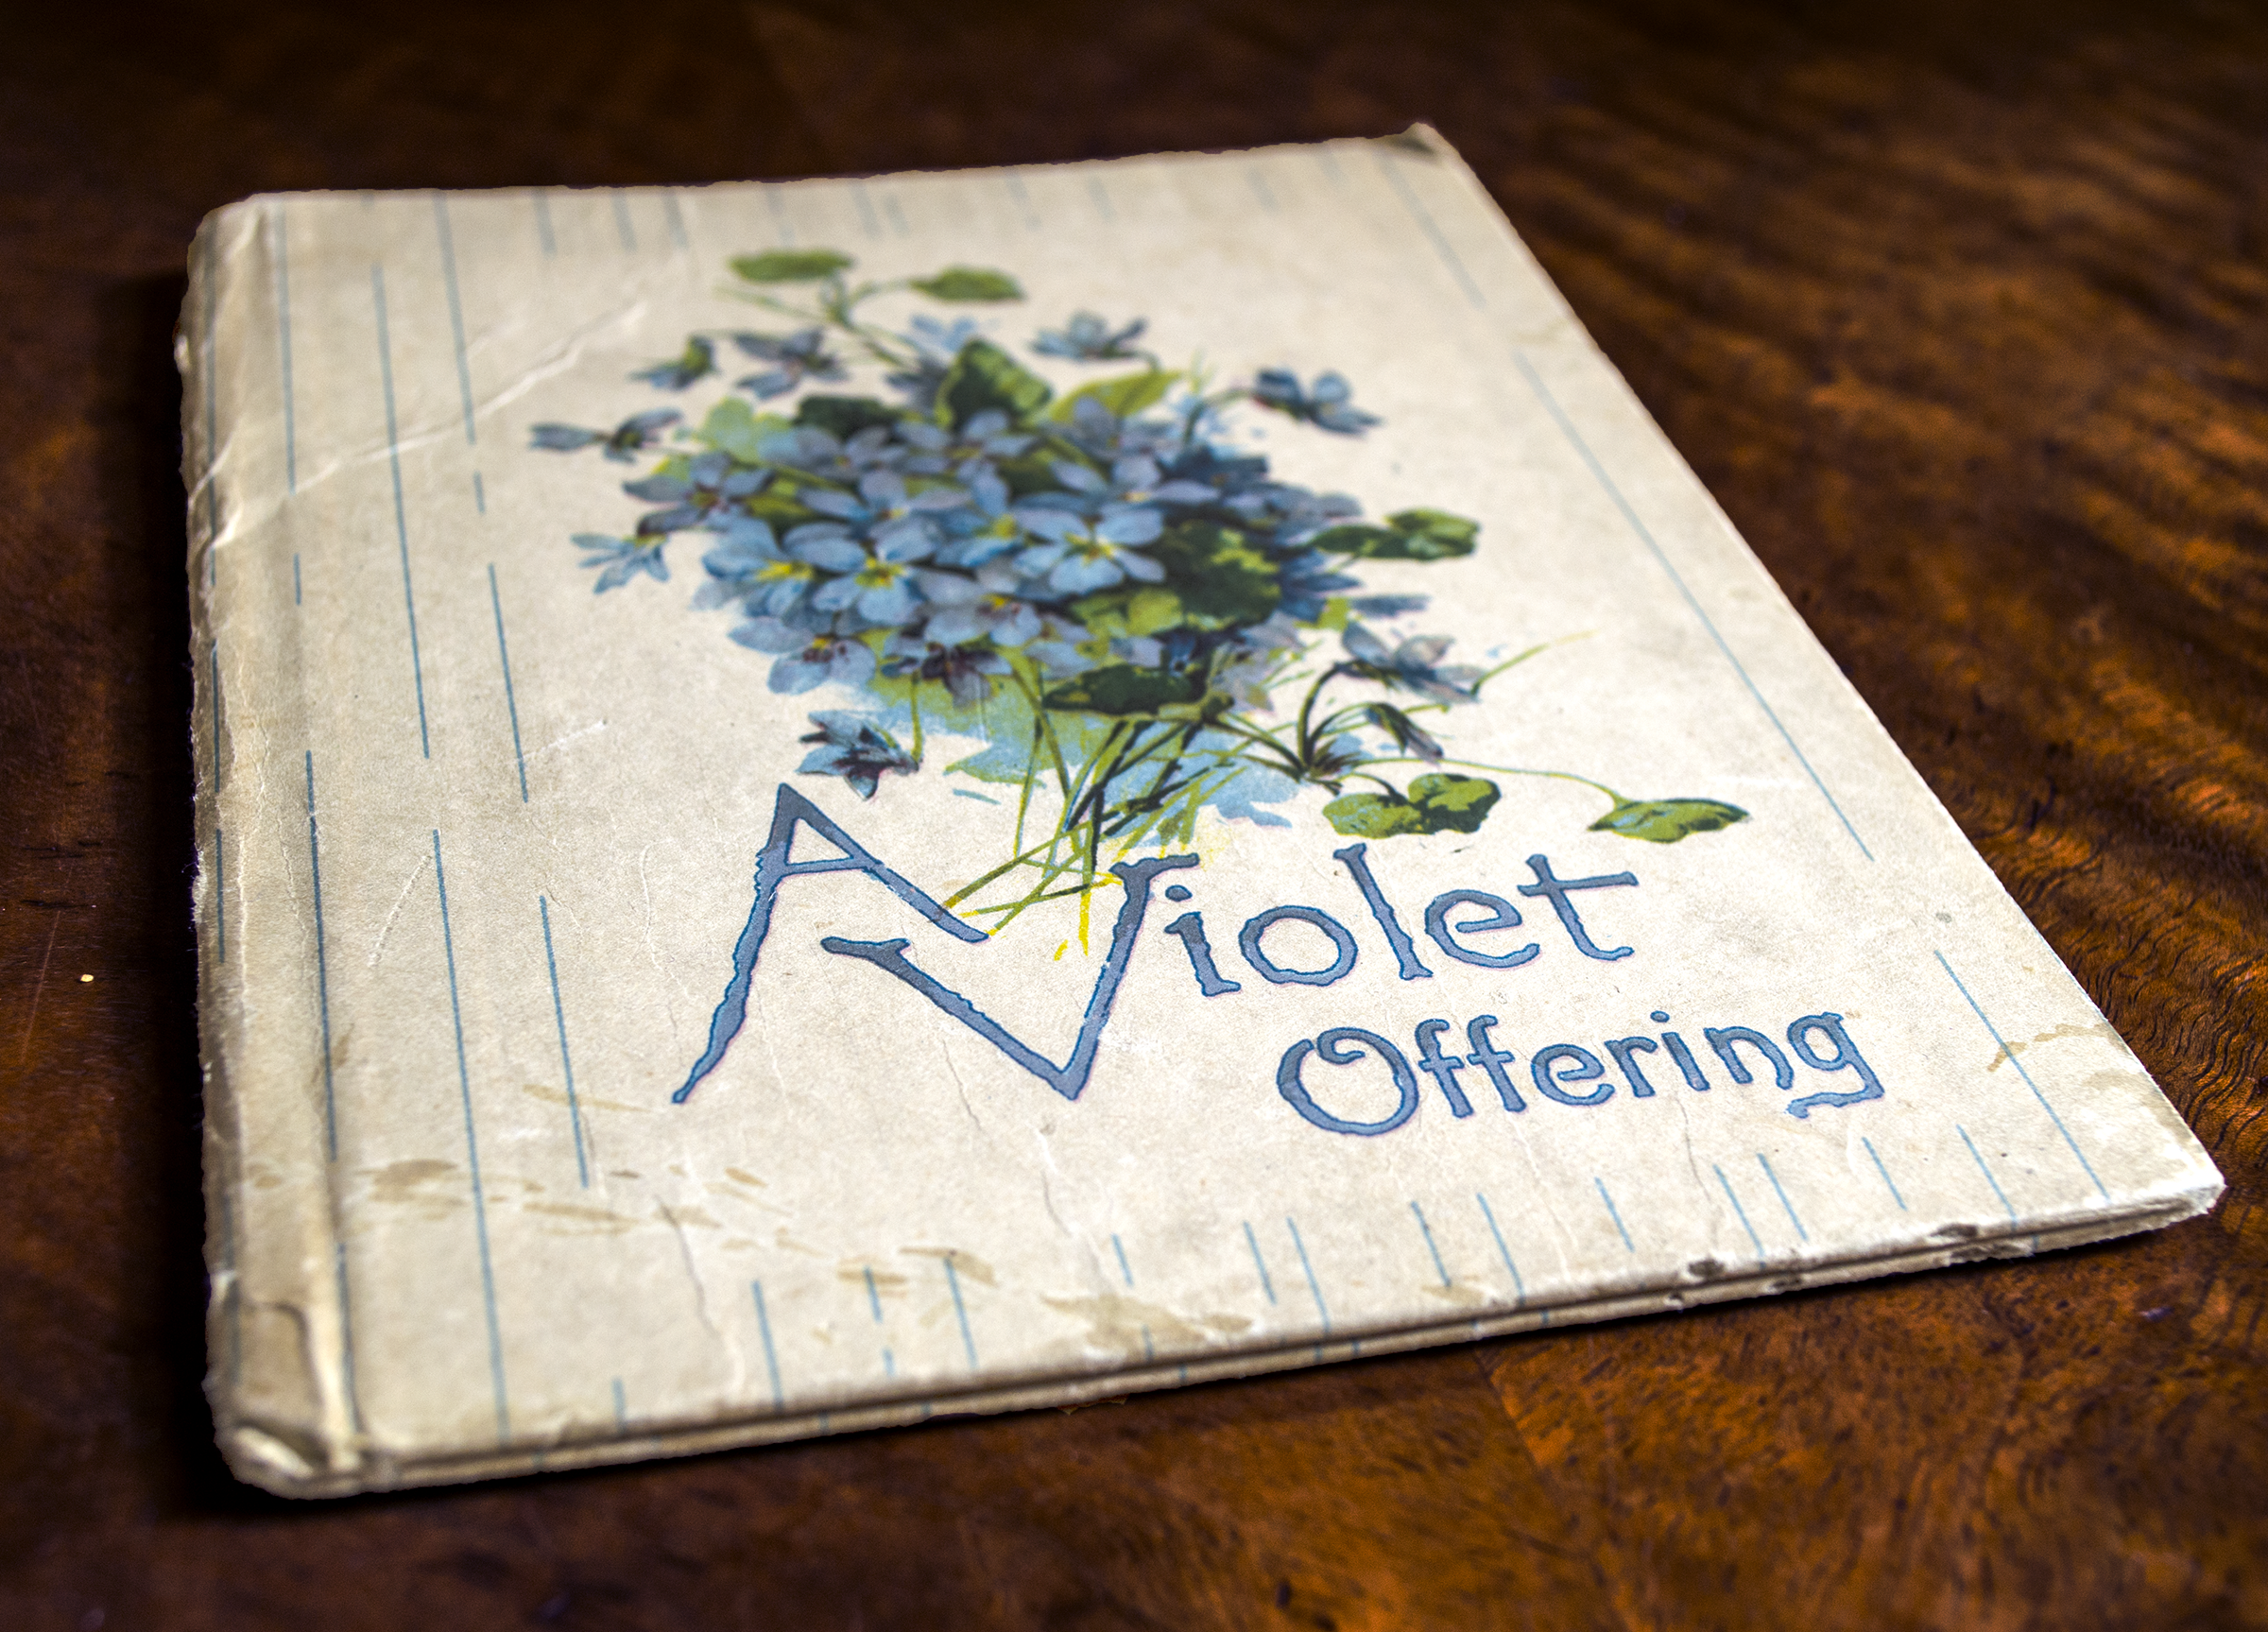 Copy of Violet poetry book from the early 1900's